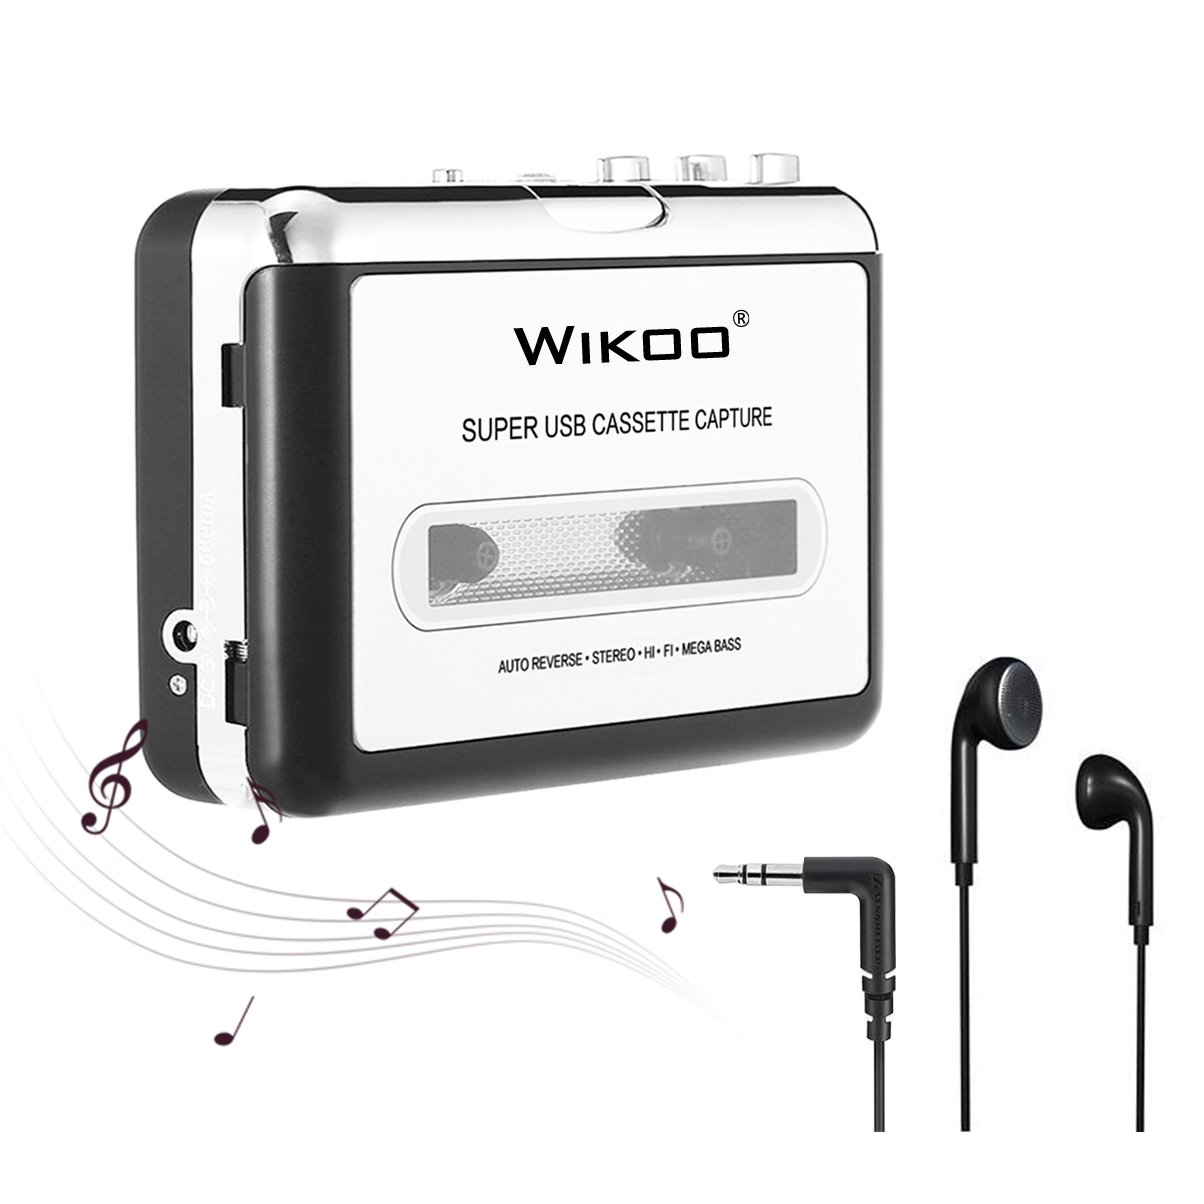 Wikoo Cassette Tape to MP3 CD Converter via USB,Portable USB Cassette Tape Player Walkman Captures MP3 Audio Music -Compatible with Laptops and PC,Convert Tape Cassettes to MP3 Format